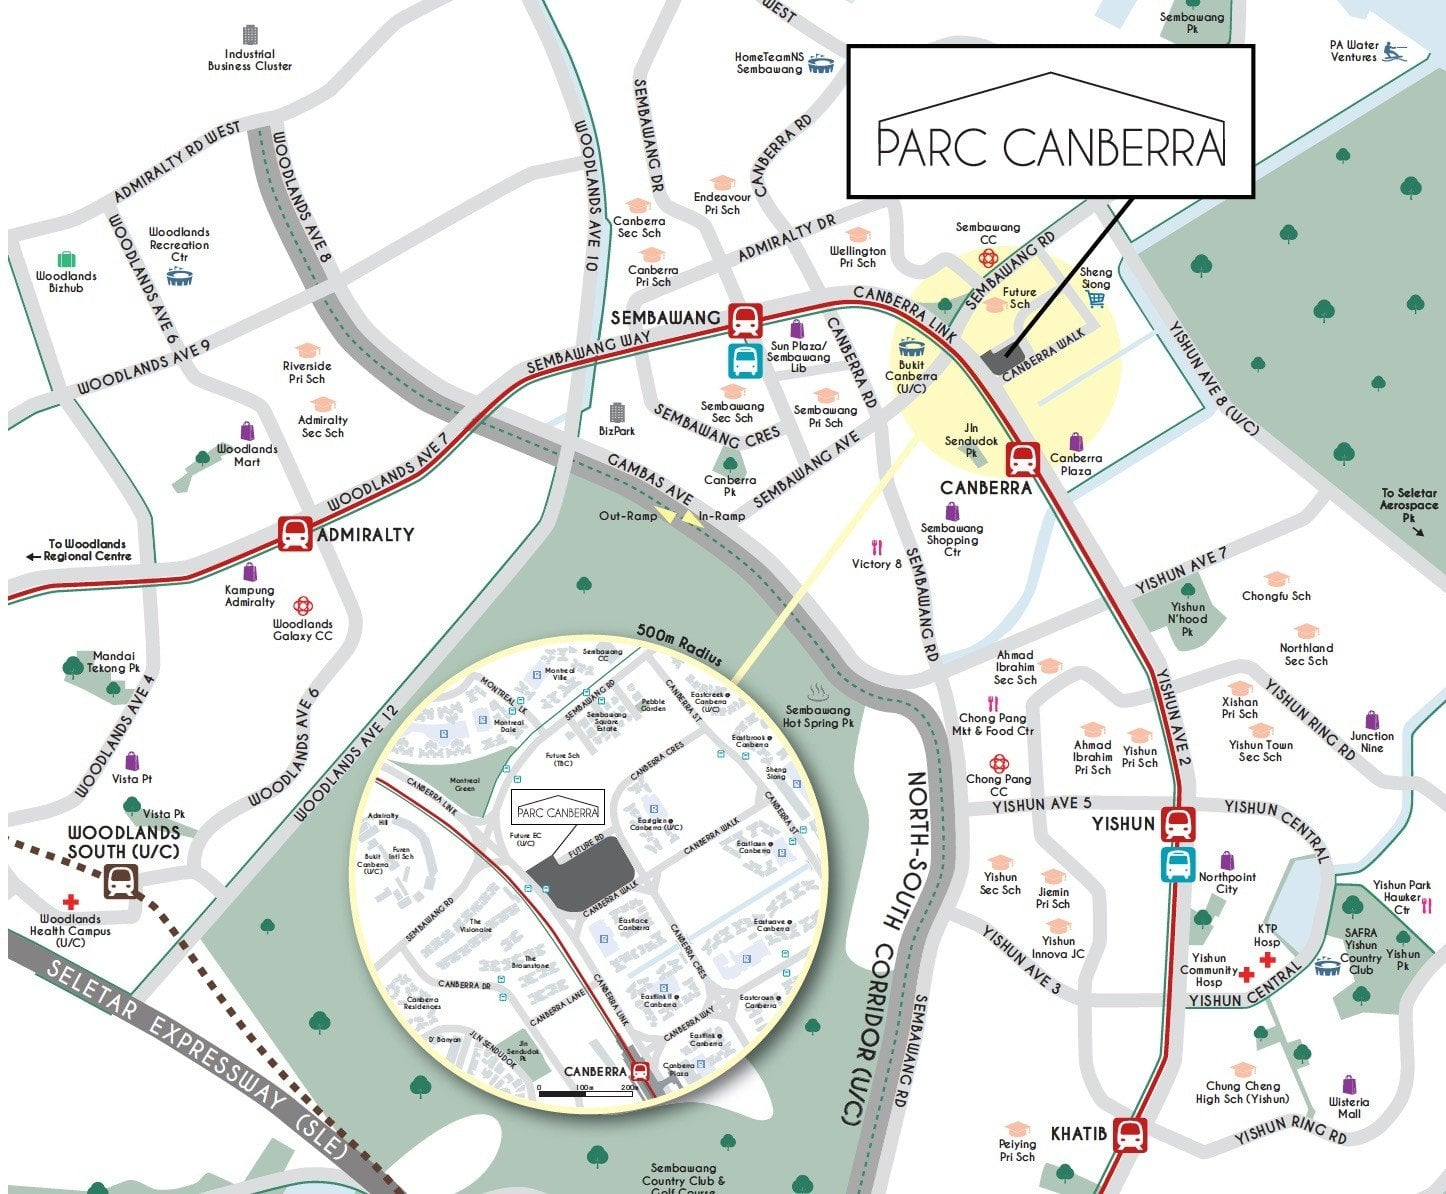 Parc Canberra location map